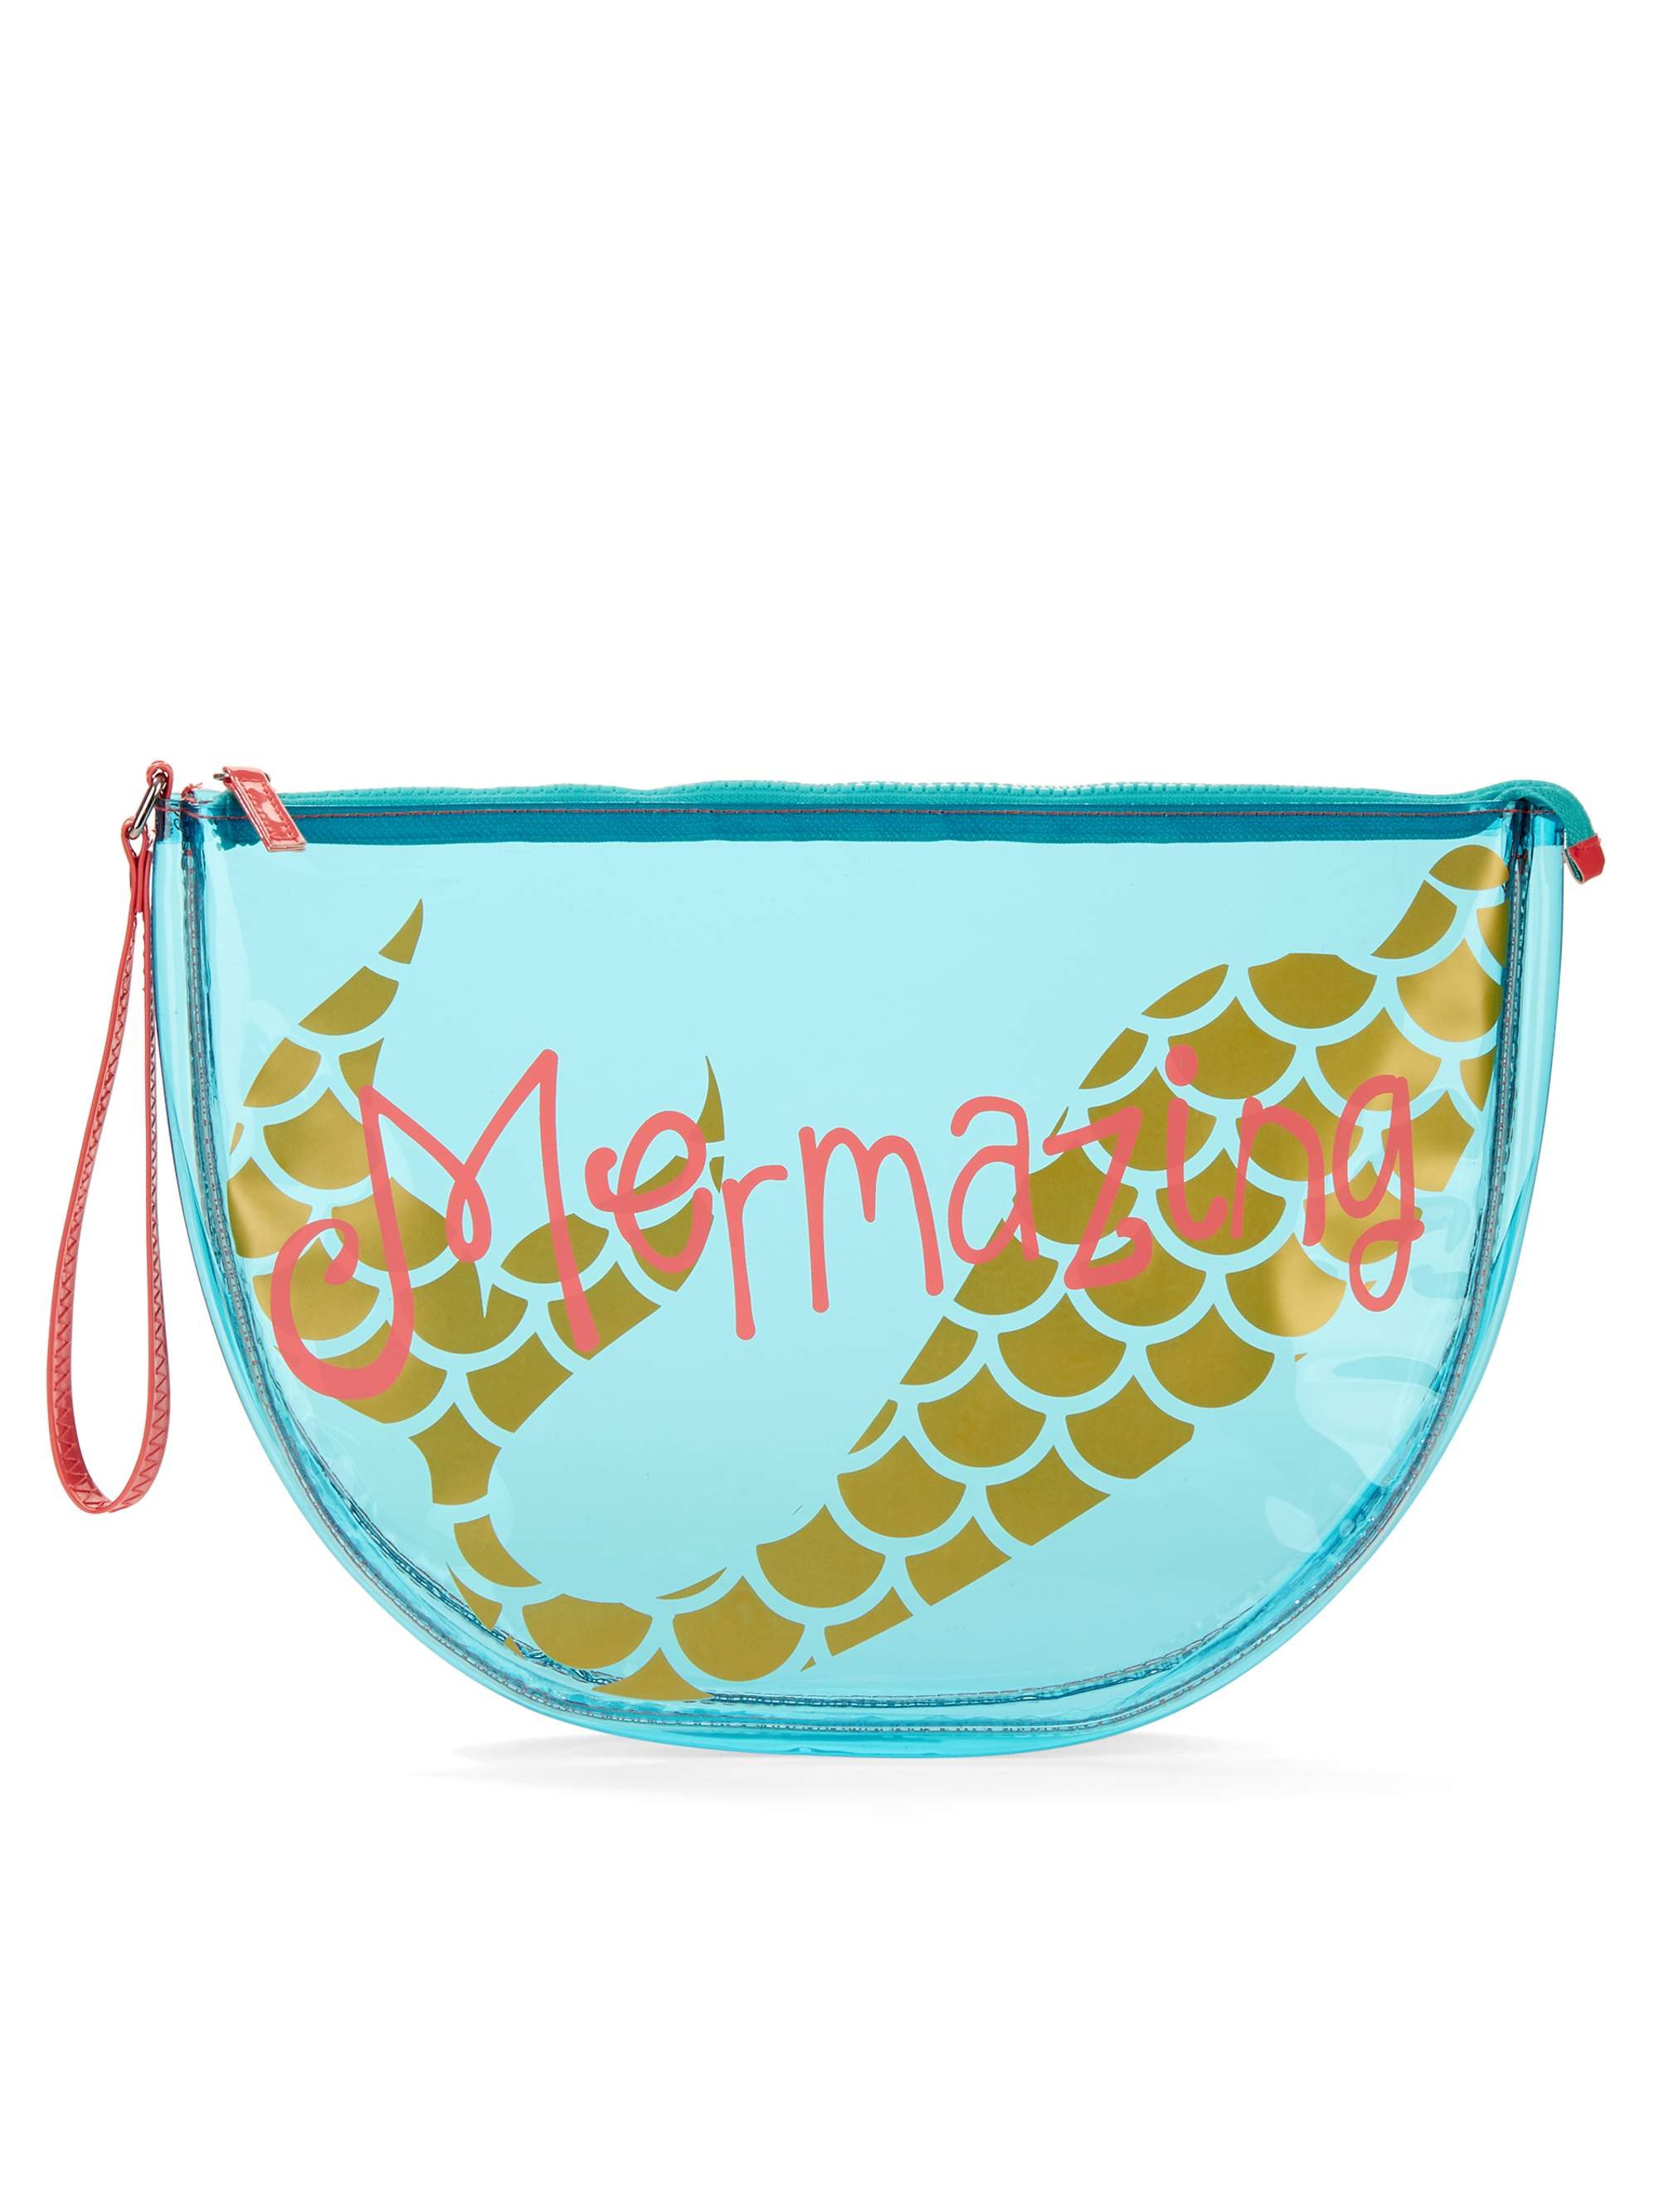 No Boundaries Jelly Half Moon Beach Pouch